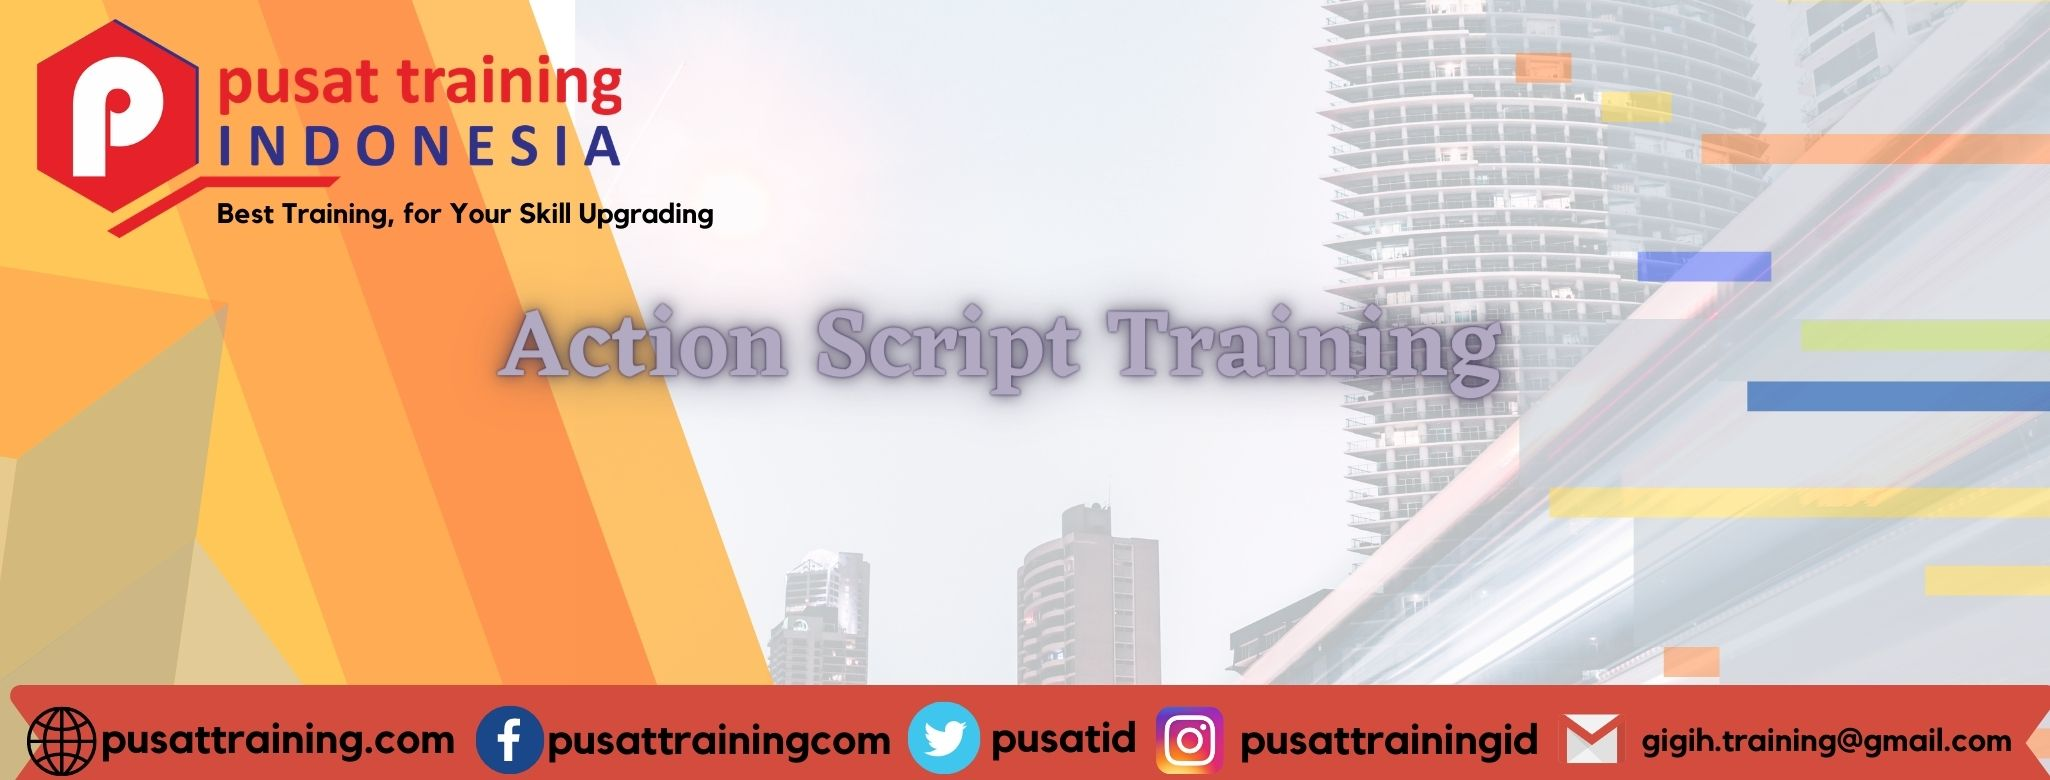 Action Script Training